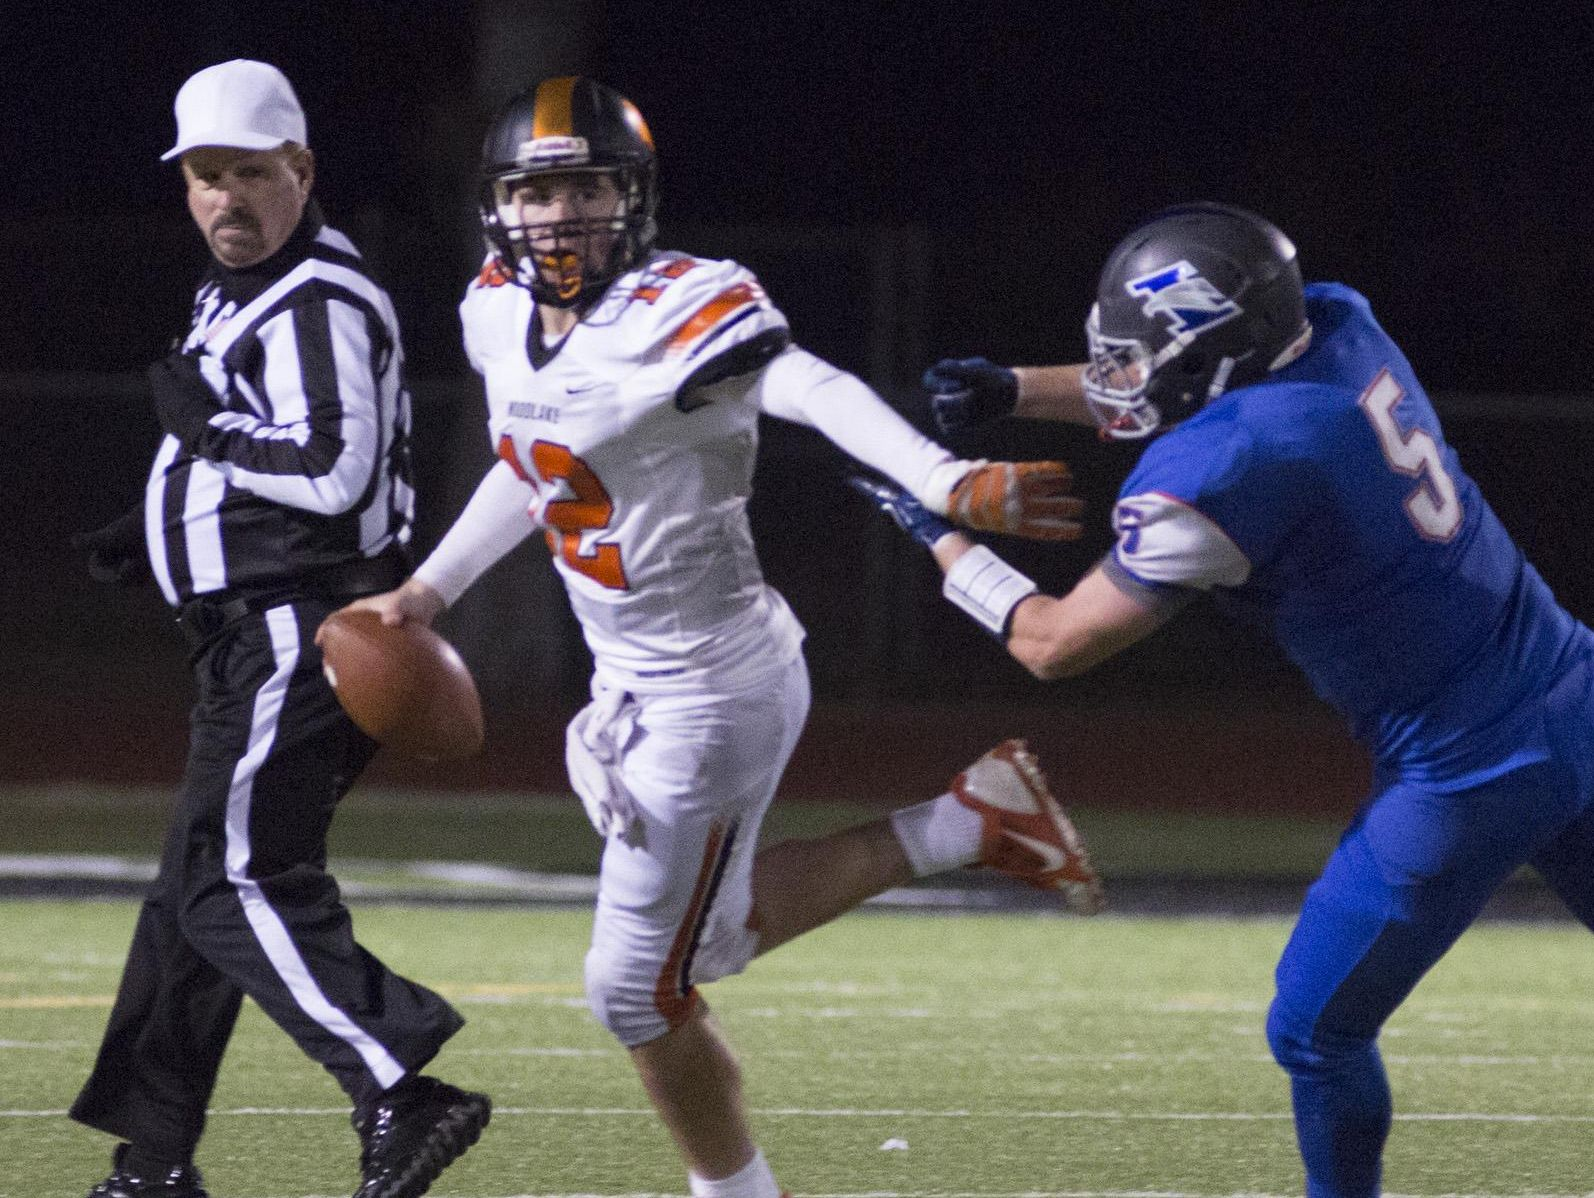 Woodlake freshman quarterback Robby Stevenson (12) was one of the top breakout stars of the 2015 Tulare County high school football season.